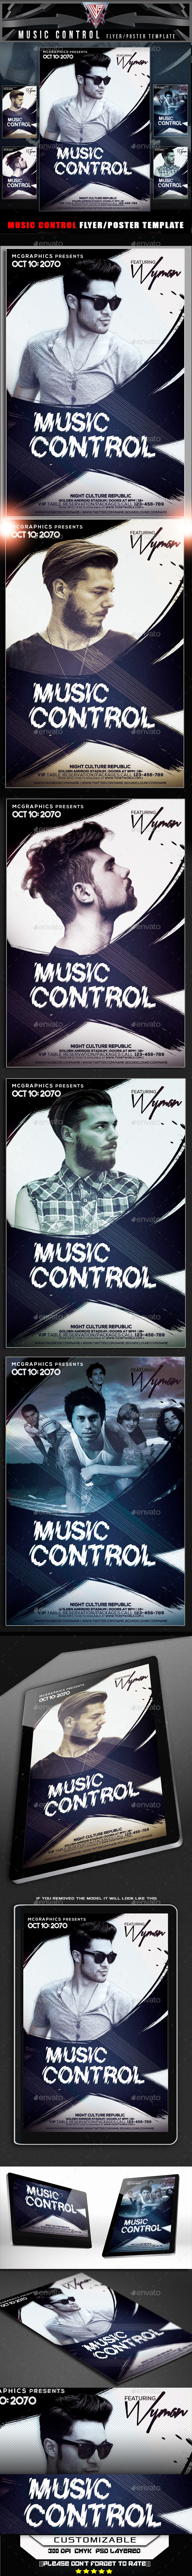 Music Control Flyer Template - Clubs & Parties Events